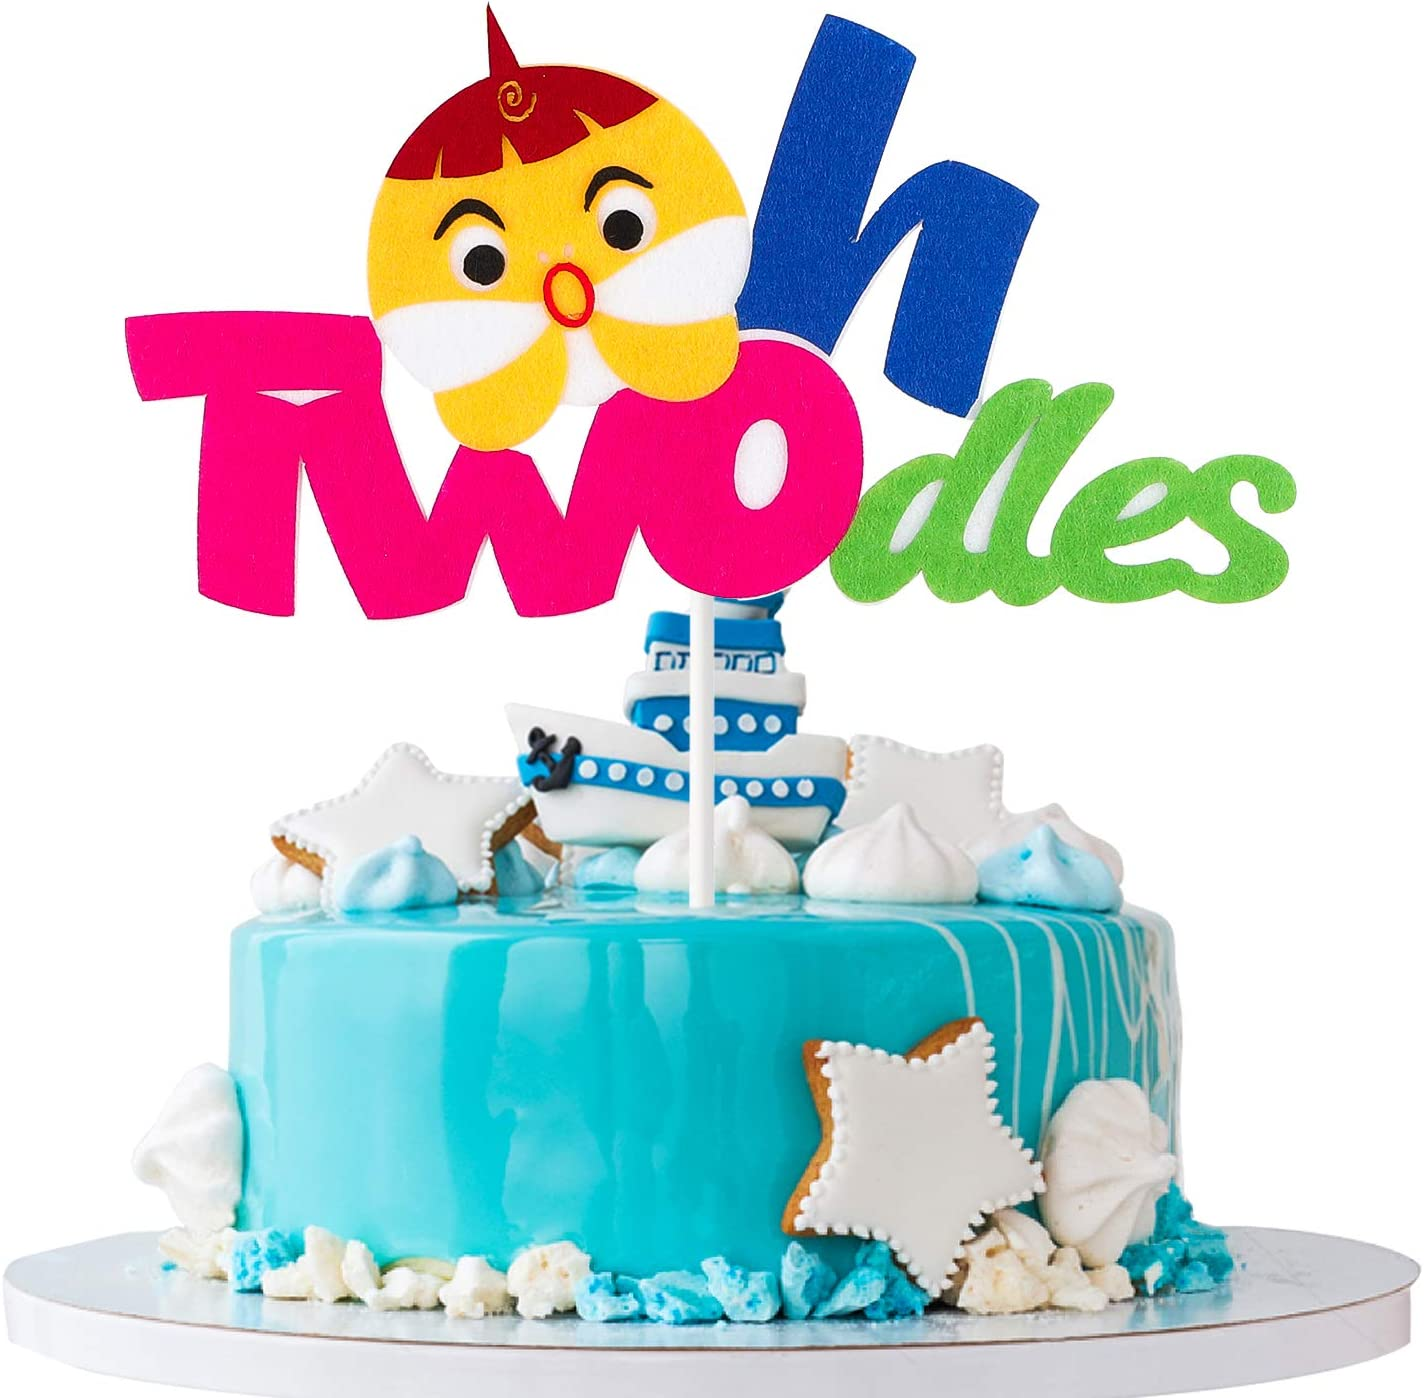 Swell Mallmall6 Little Shark Two Birthday Cake Topper Twodles Sharks 2Nd Personalised Birthday Cards Sponlily Jamesorg